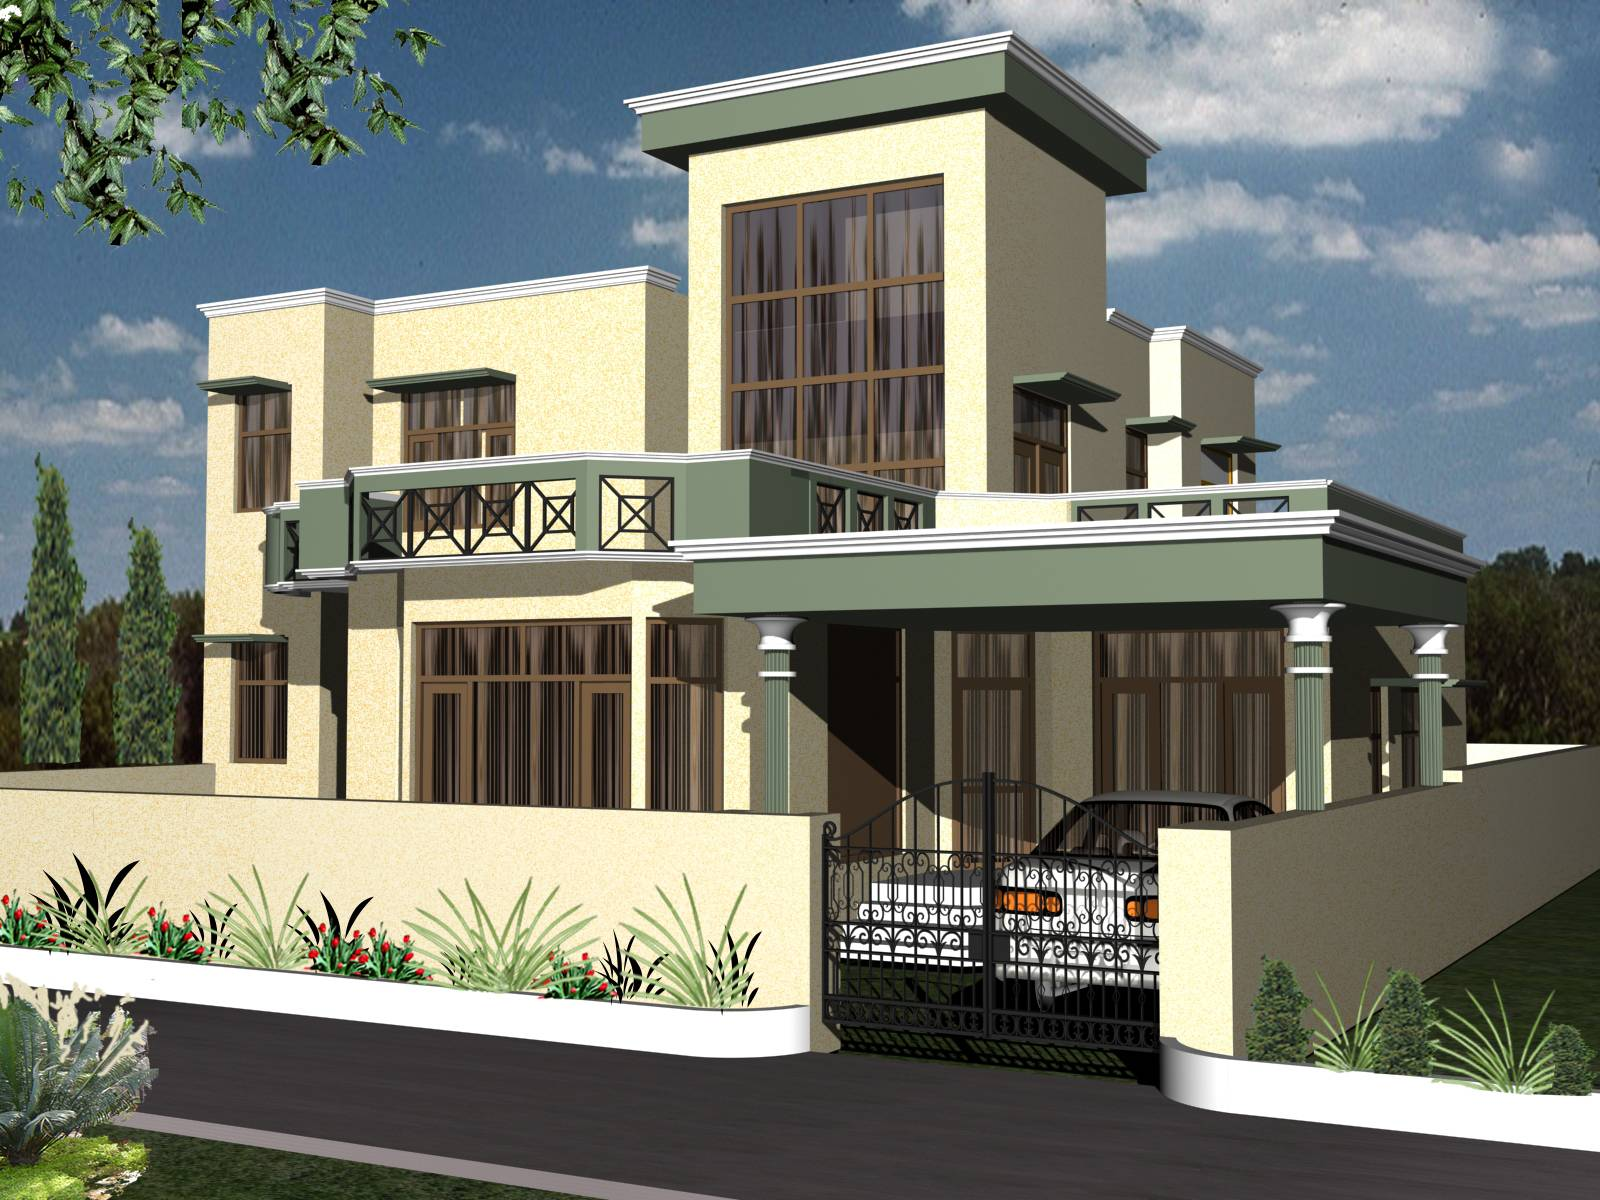 Duplex house design nigeria modern house for Blueprint designs for houses